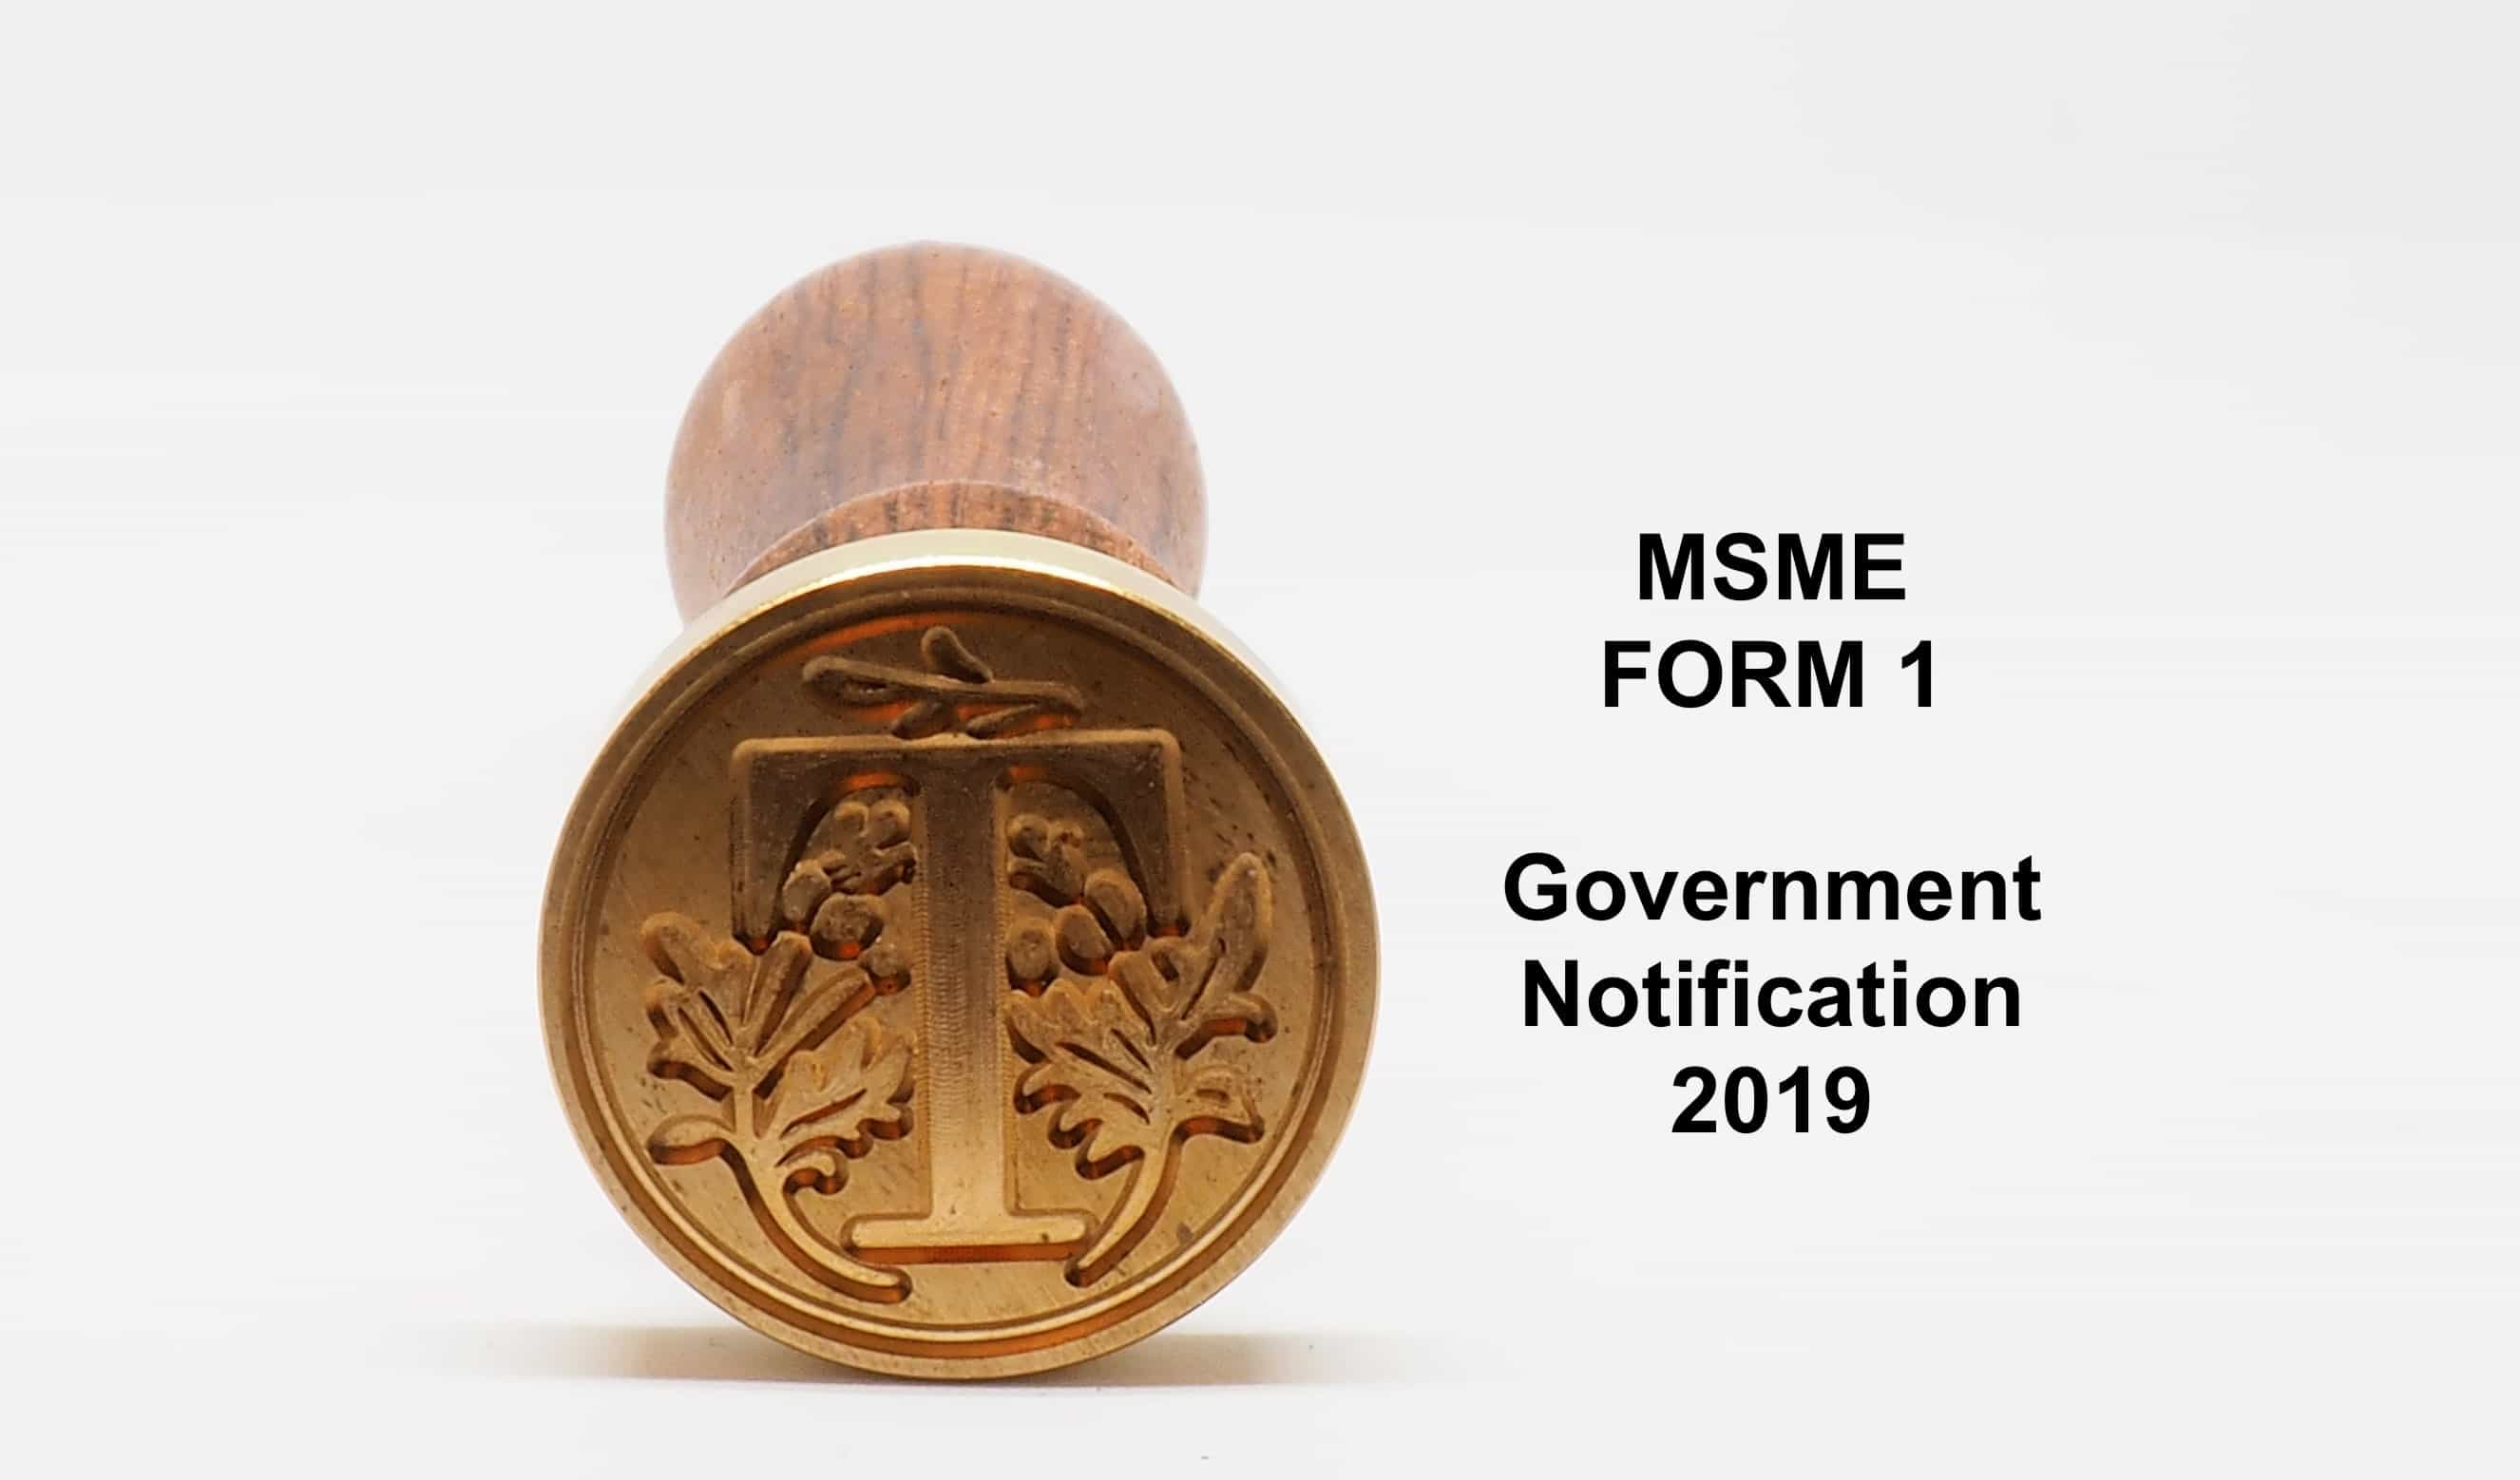 MSME Form 1 Mandatory for Private and Public limited companies 2019 MCA Notification